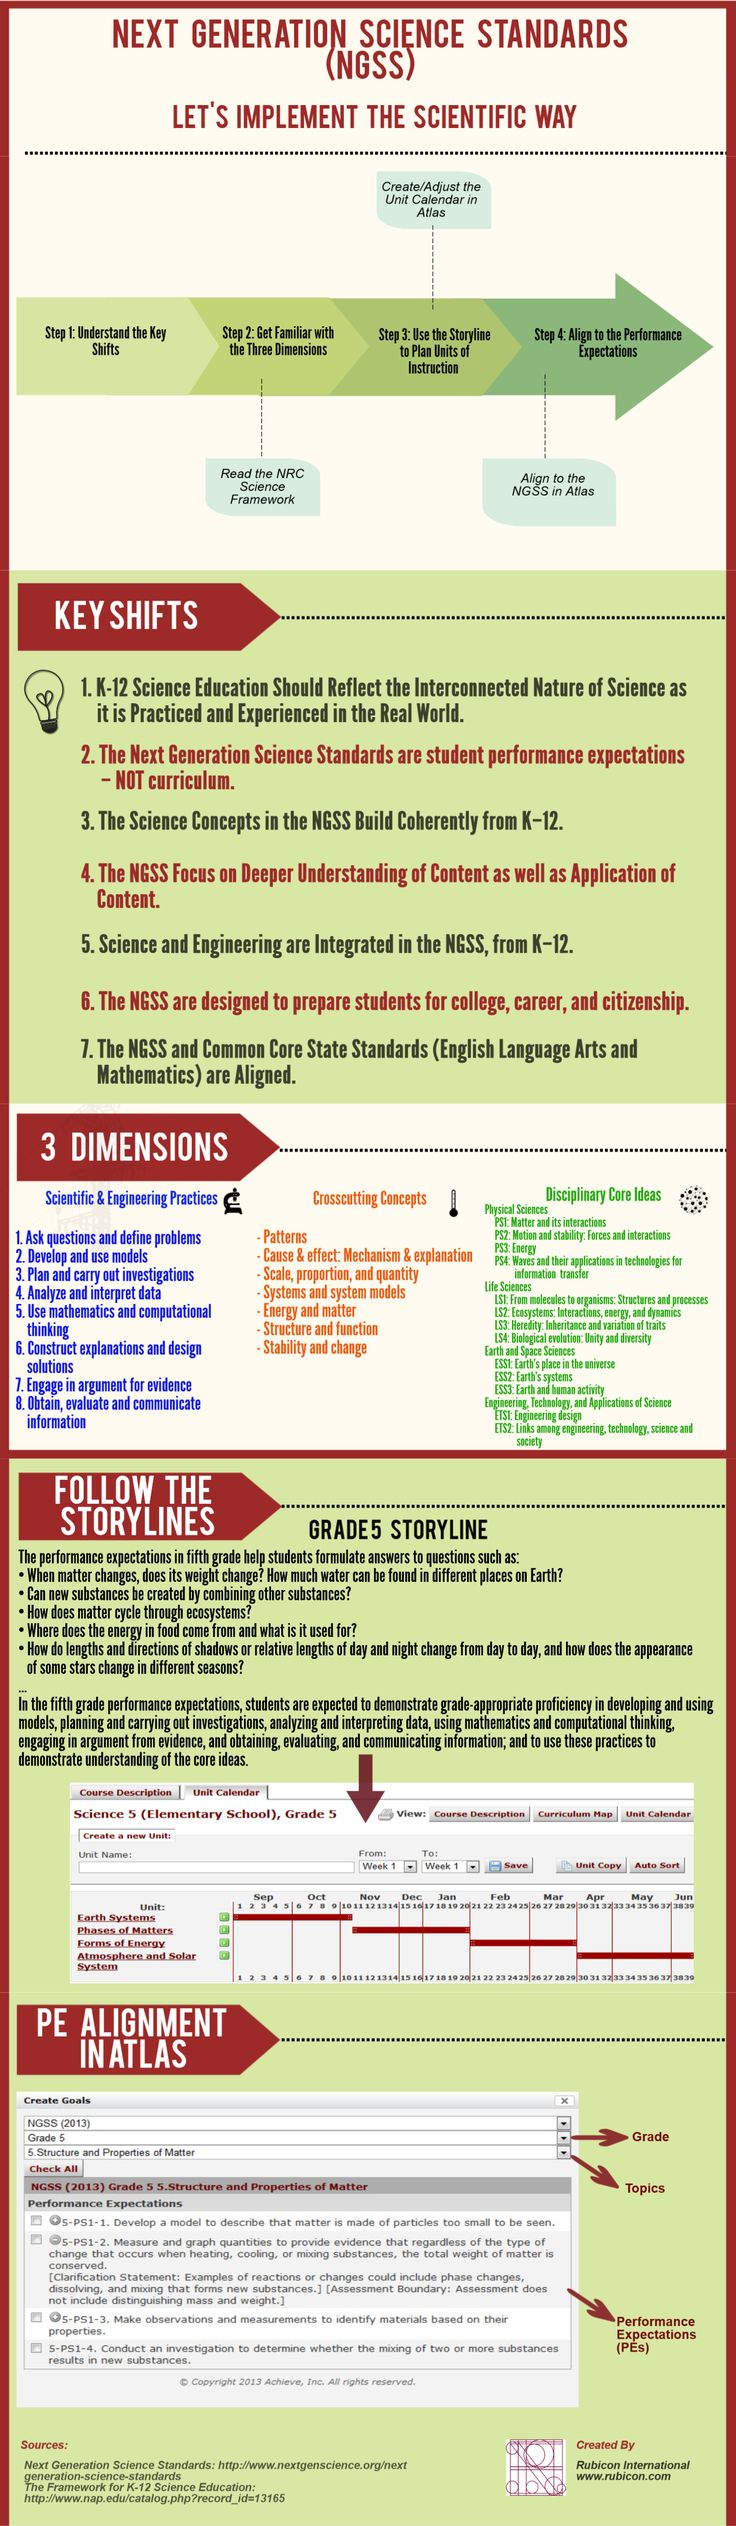 Next Generation Science Standards #NGSS: Let's Implement the Scientific Way